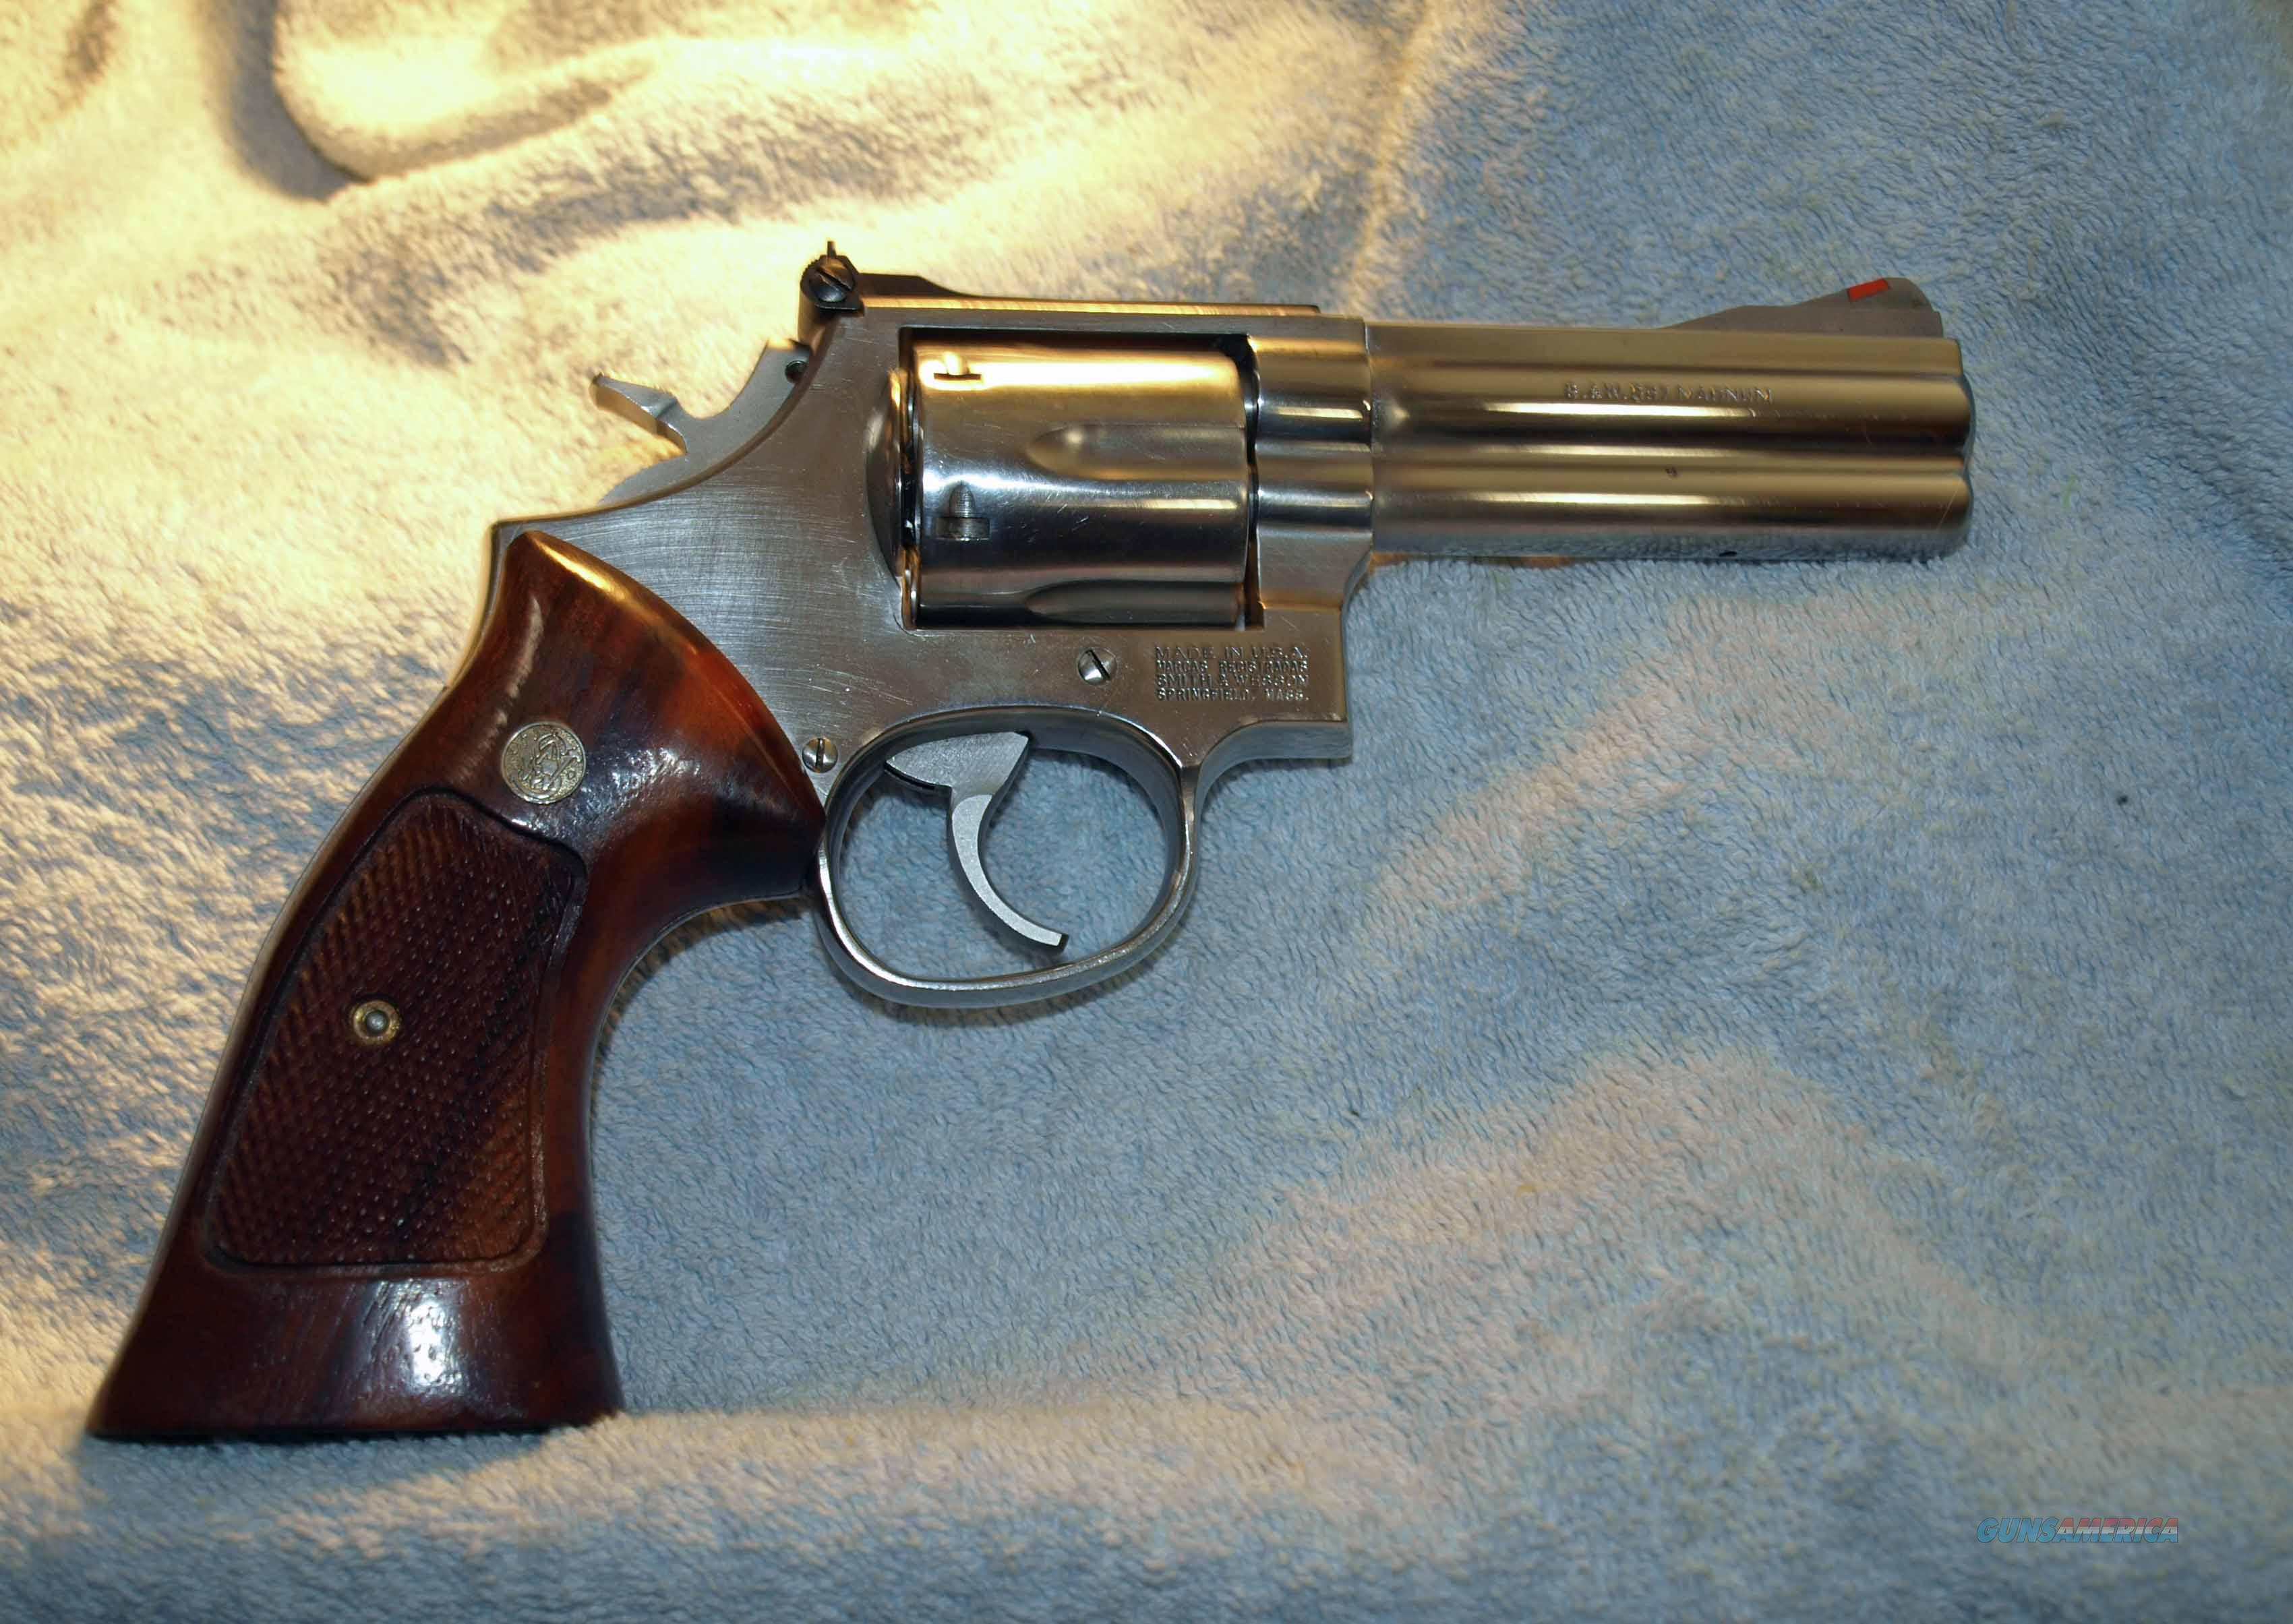 S&W Model 686/ PRICE REDUCED  Guns > Pistols > Smith & Wesson Revolvers > Full Frame Revolver